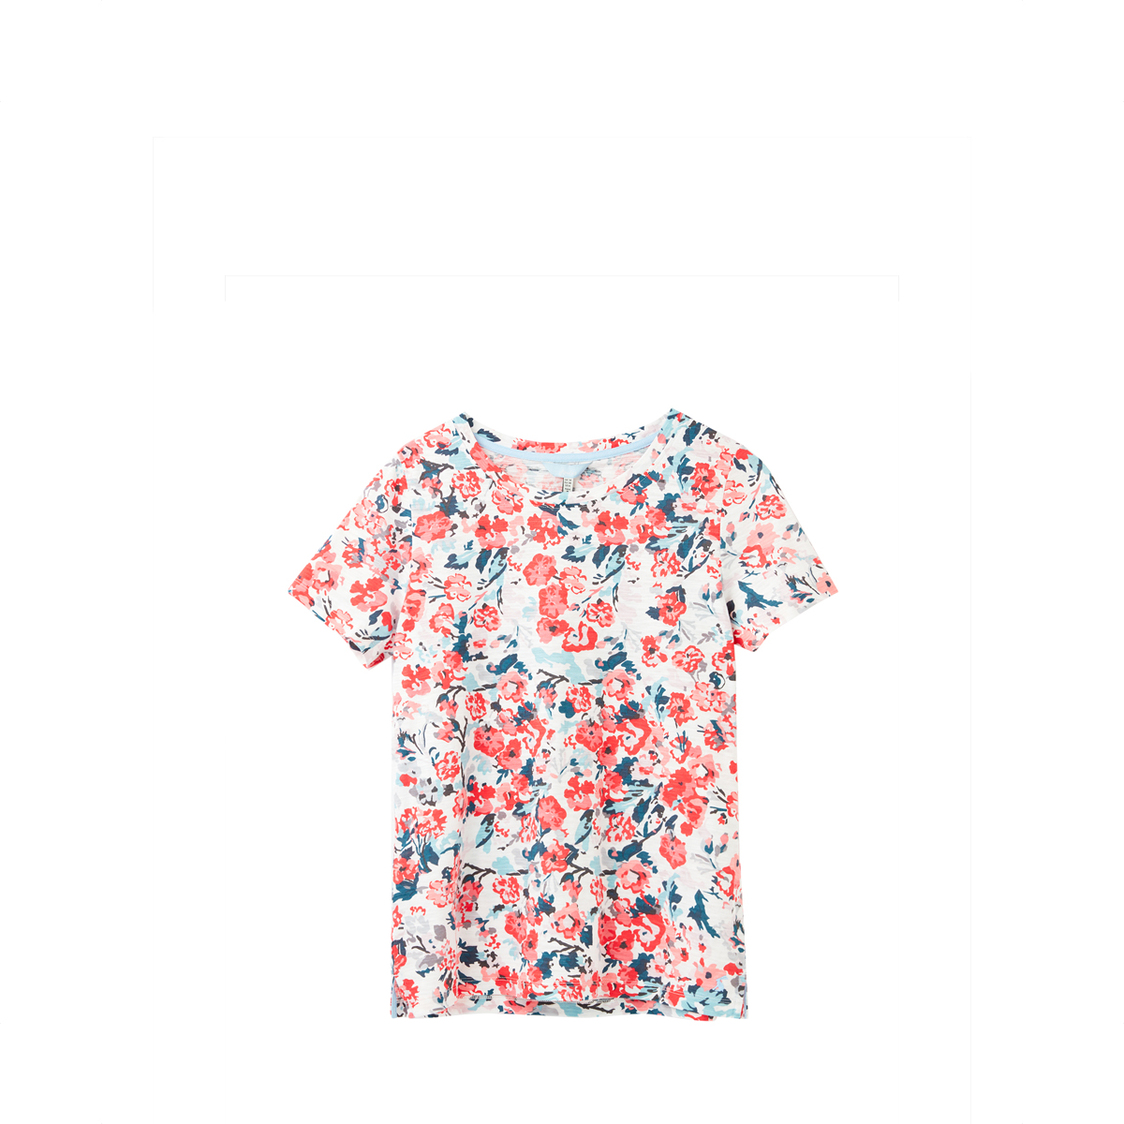 Tom Joule Carley Classic Crew Neck Top Cream Floral